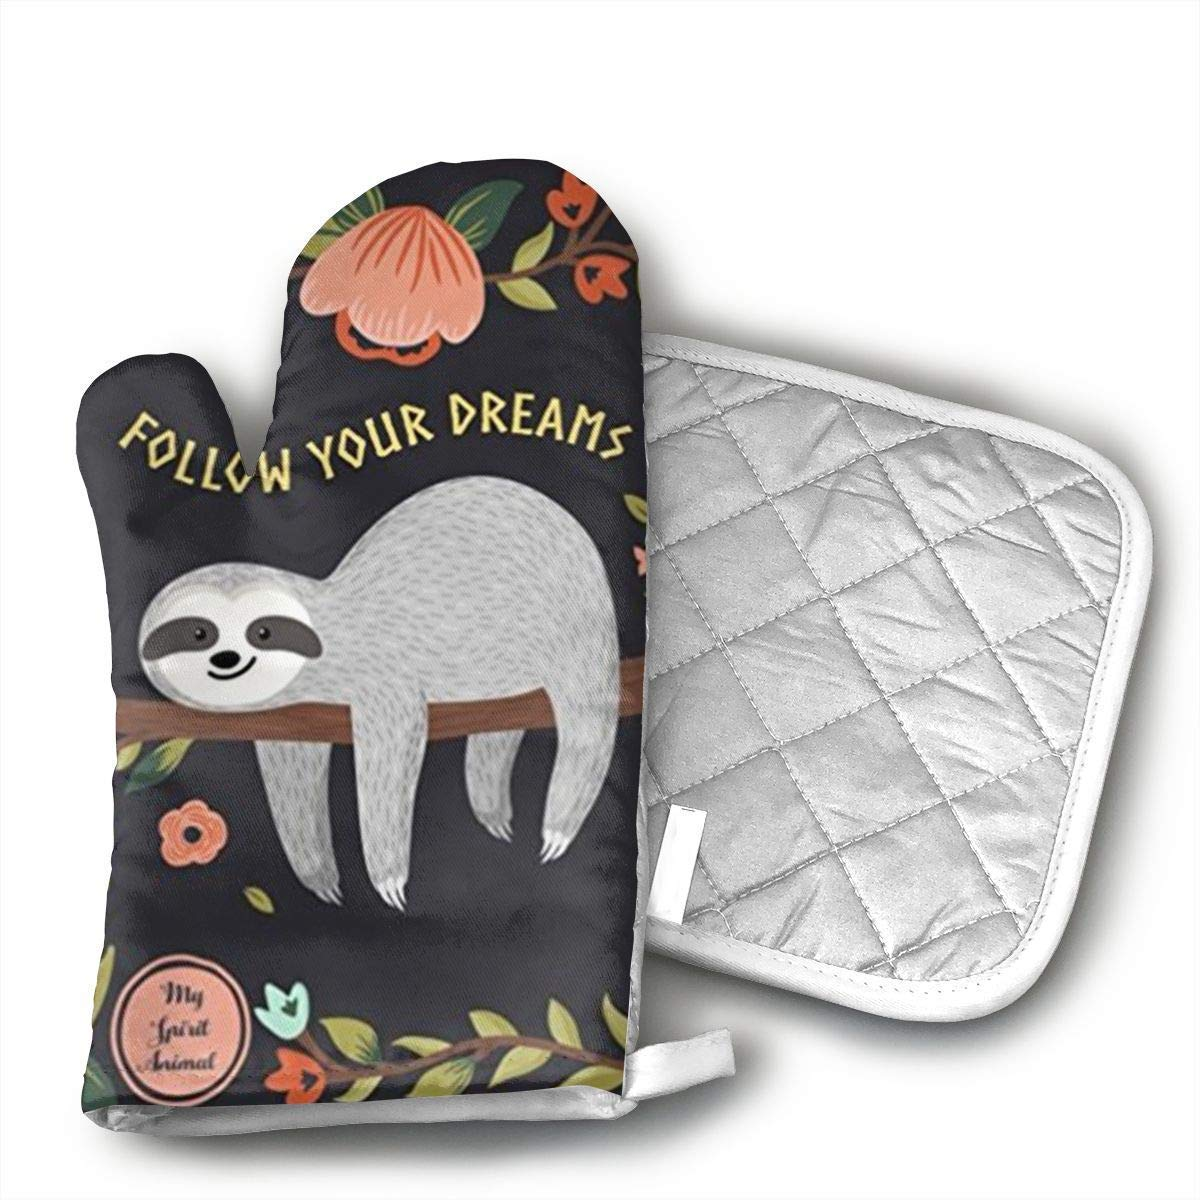 Follow Your Dreams Sloth My Spirit Animal Oven Mitts,Professional Heat Resistant Microwave BBQ Oven Insulation Thickening Cotton Gloves Baking Pot Mitts Soft Inner Lining Kitchen Cooking